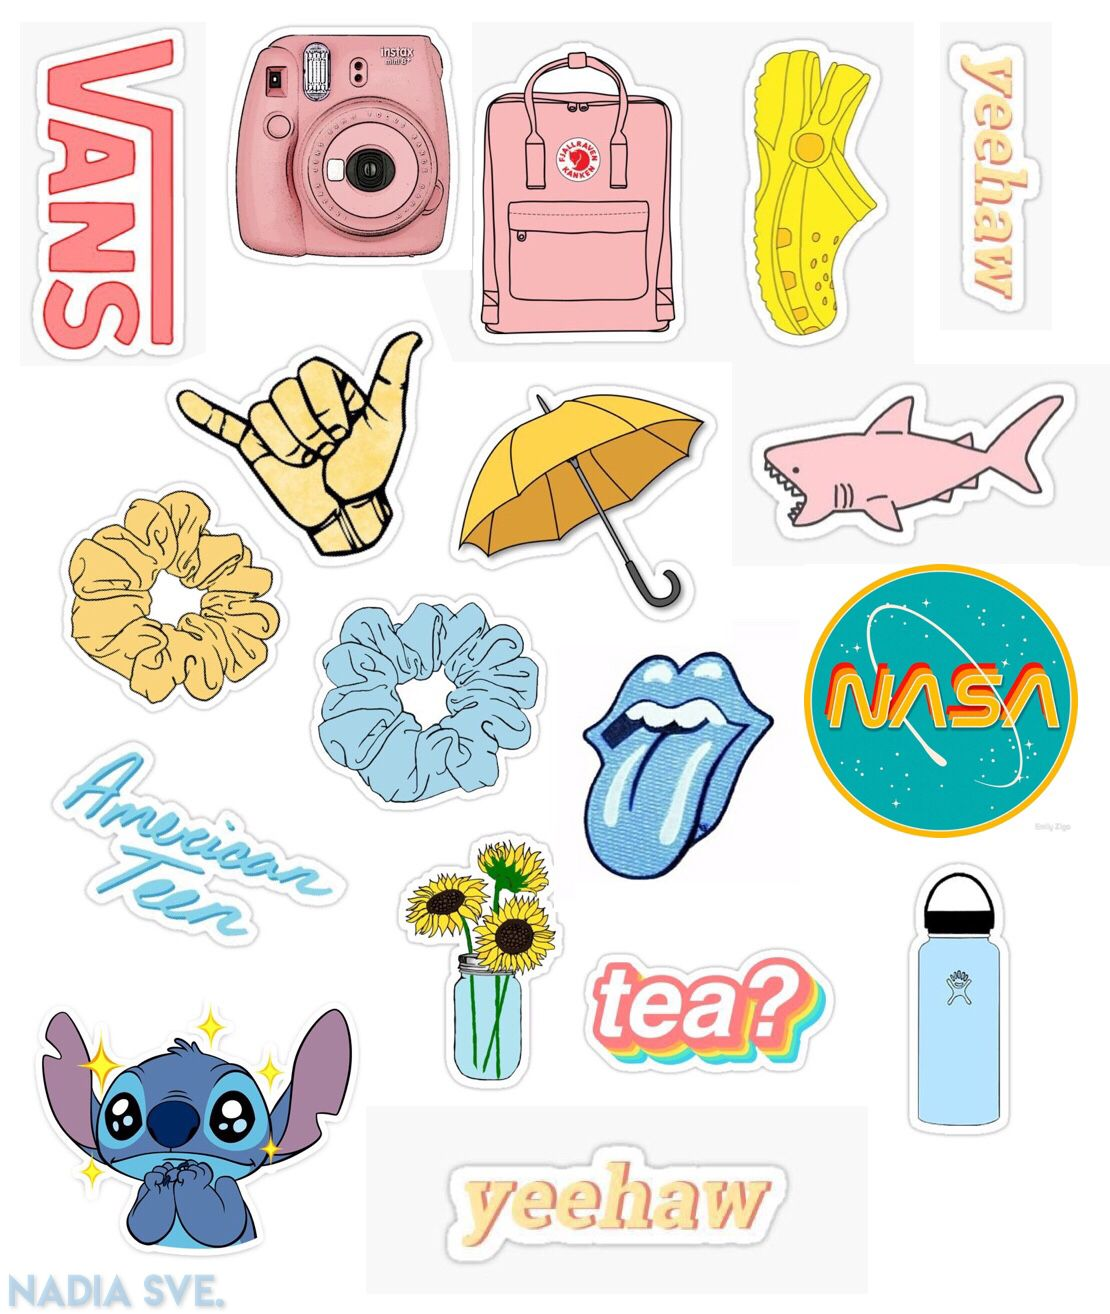 An actually AESTHETIC sticker collage download and print